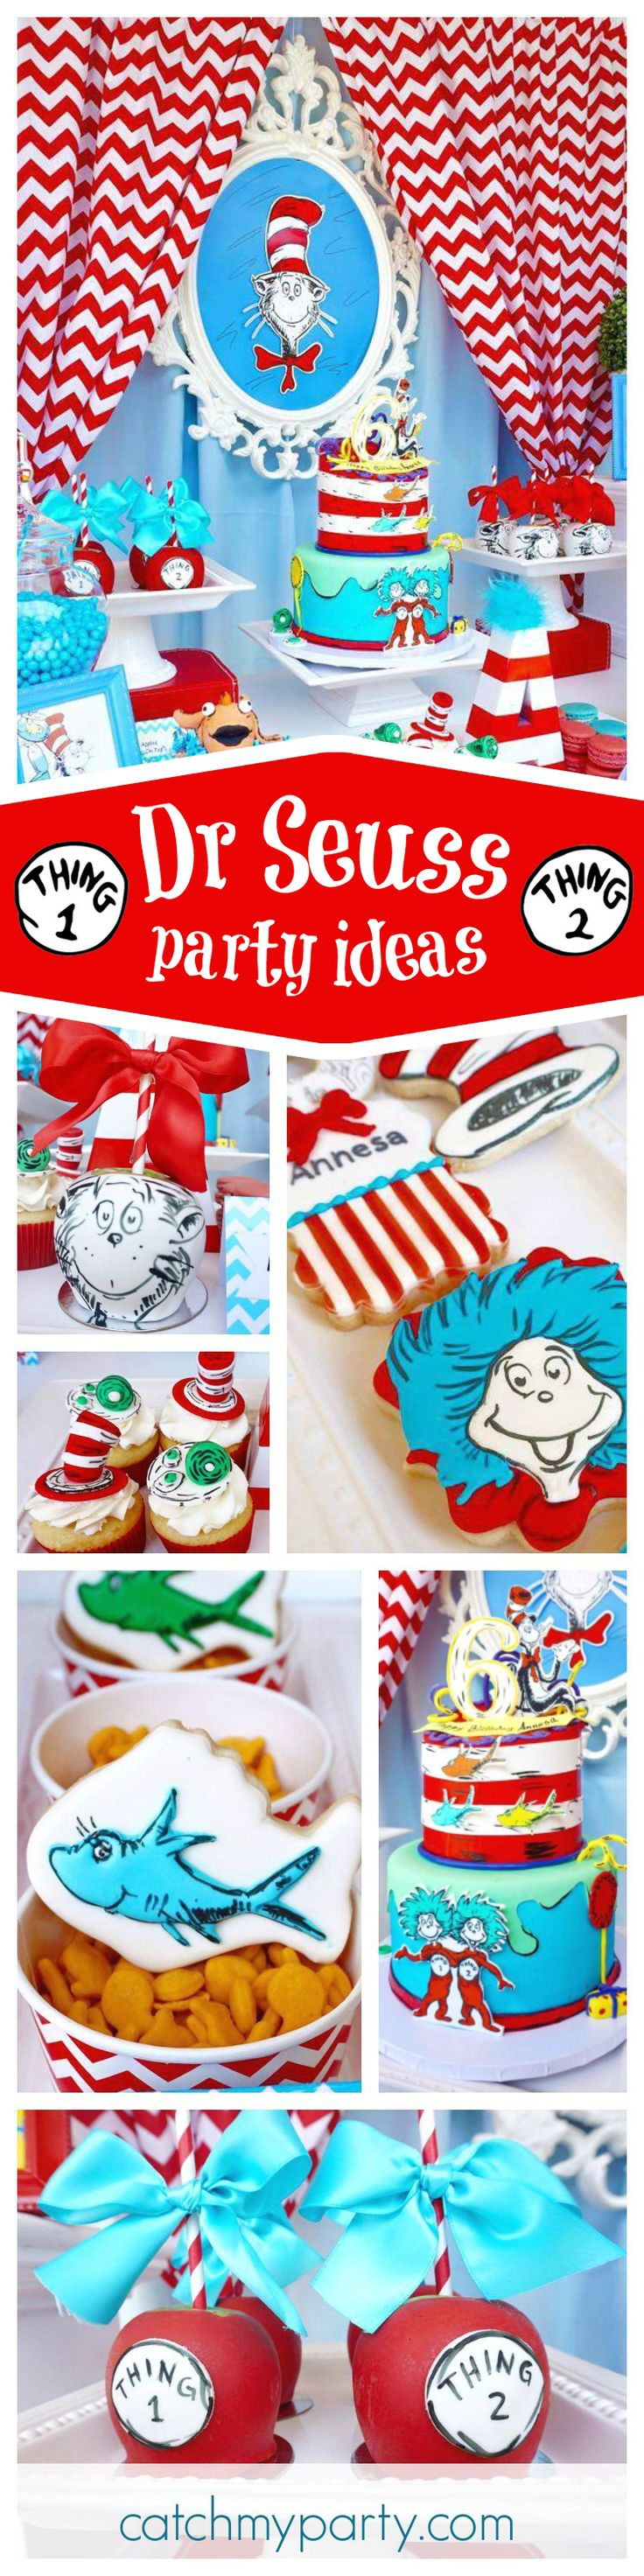 Check out this fantastic Dr. Seuss Cat in the Hat Birthday Party. The backdrop is awesome and the desserts stunning! See more party ideas and share yours at CatchMyParty.com